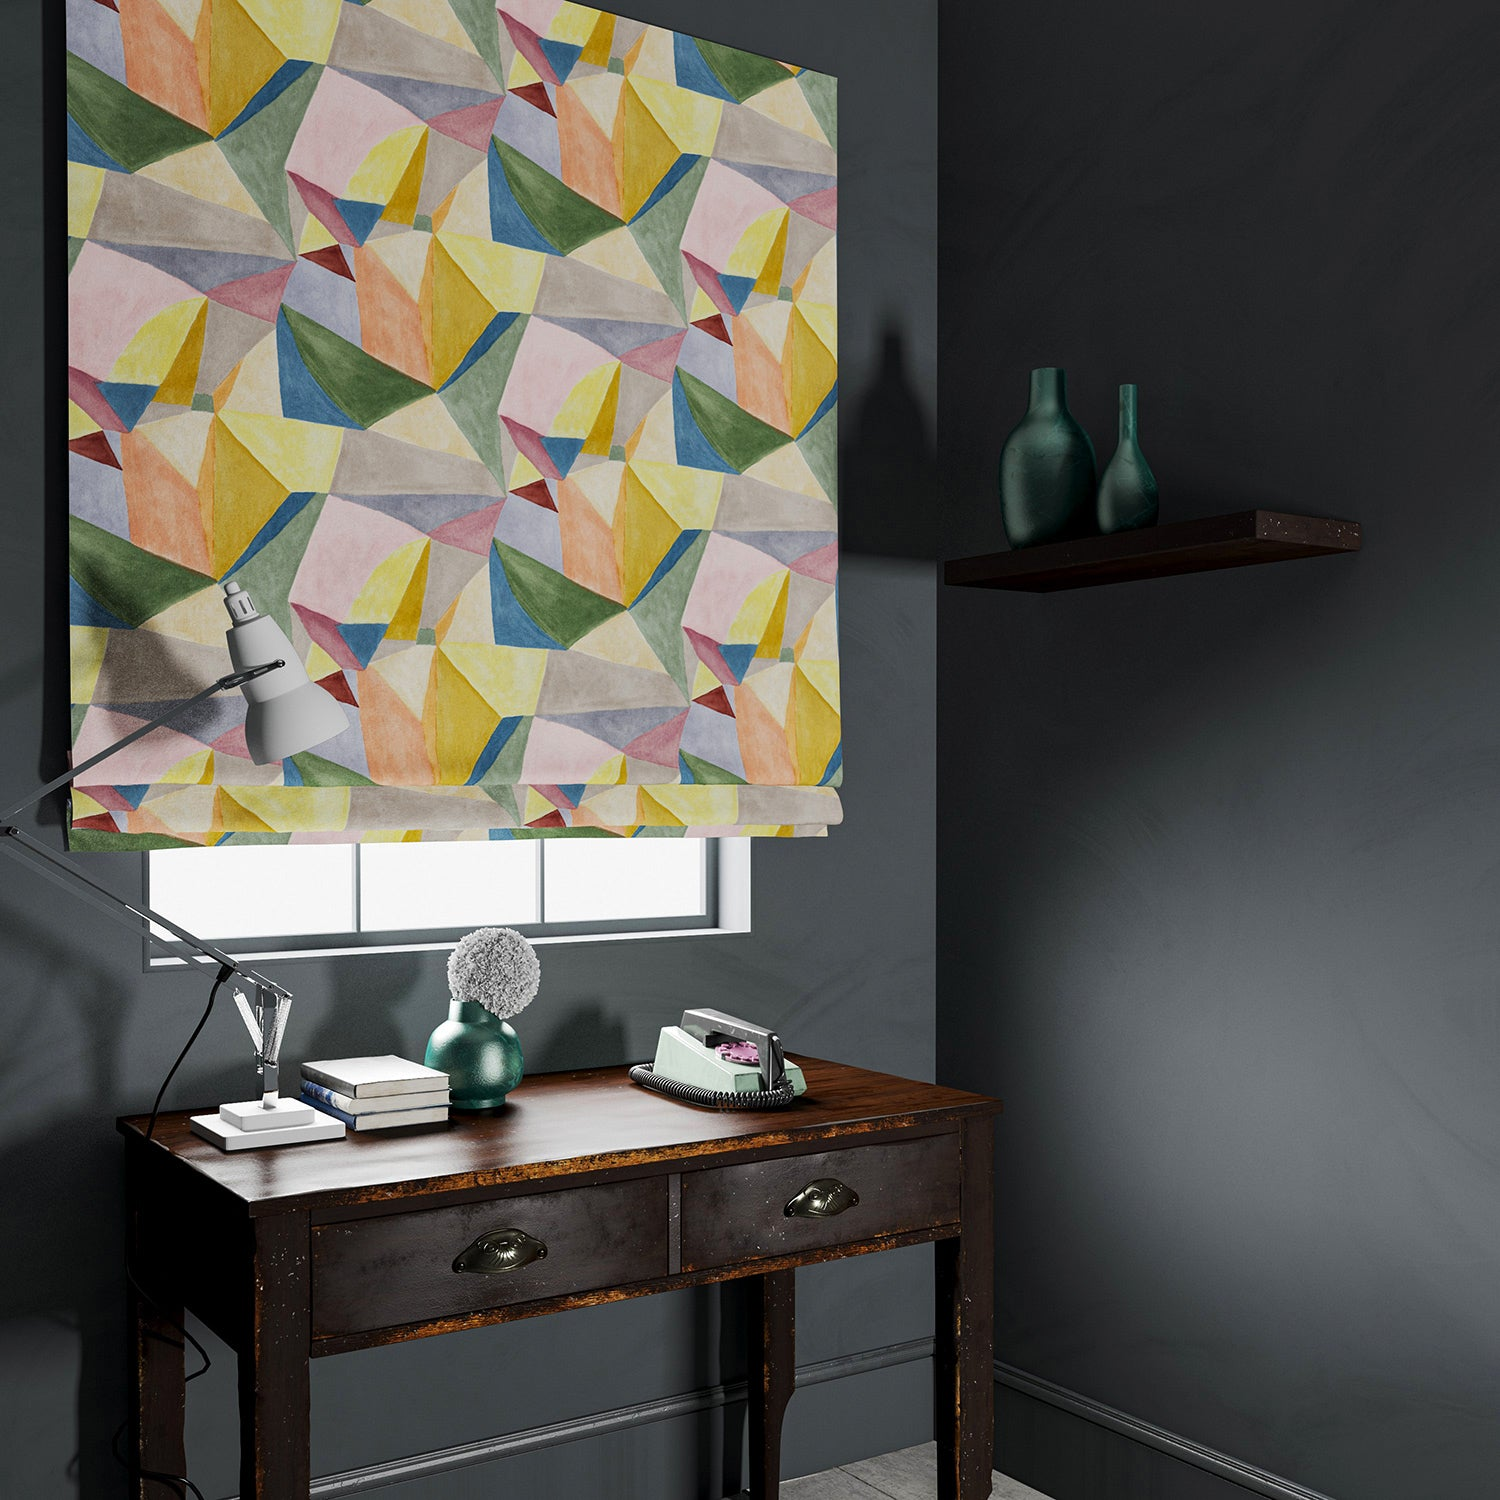 Blind in a multicoloured velvet fabric with a modern, geometric design